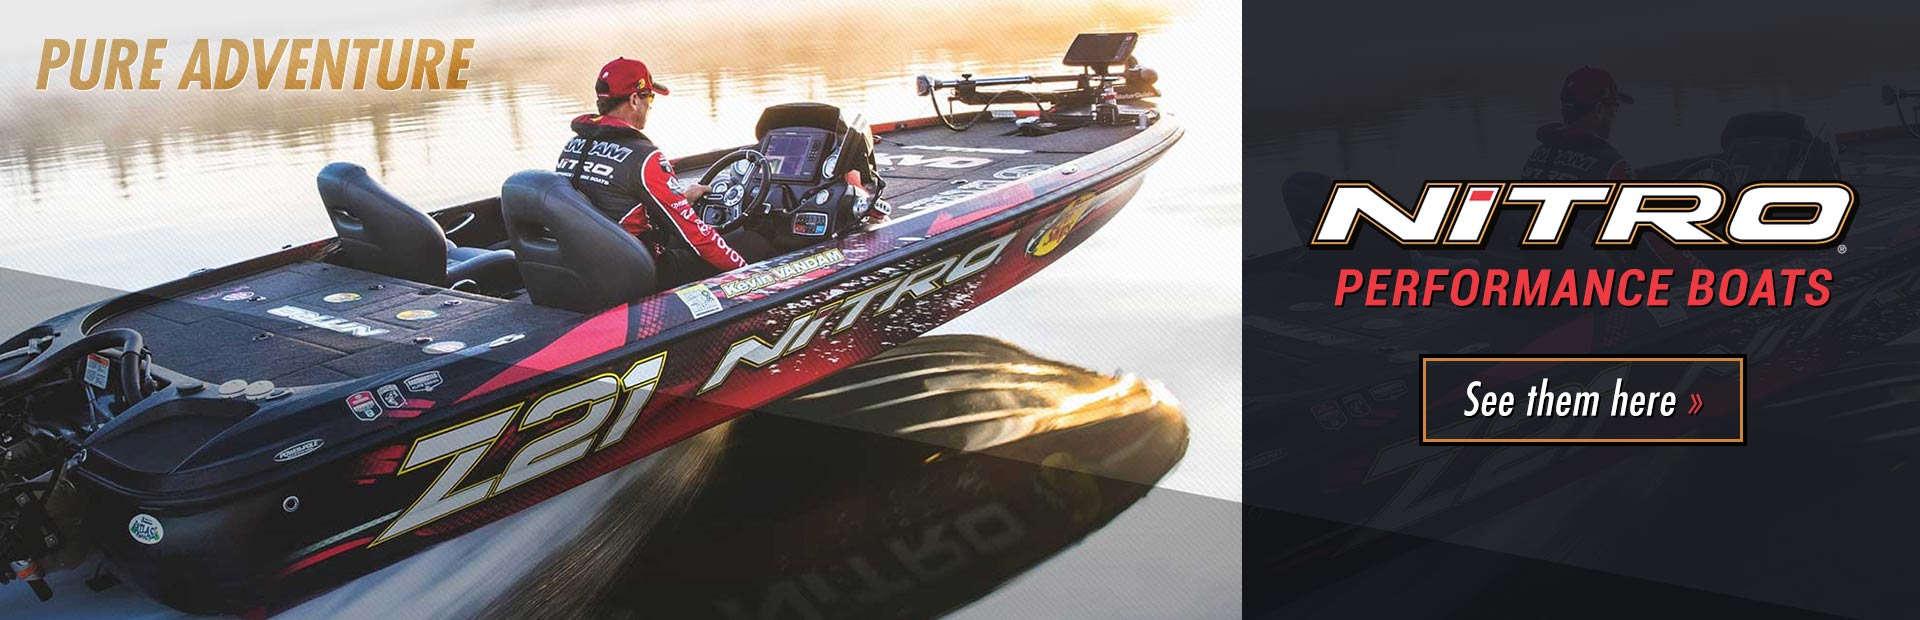 NITRO® Performance Boats: Click here to view the models.